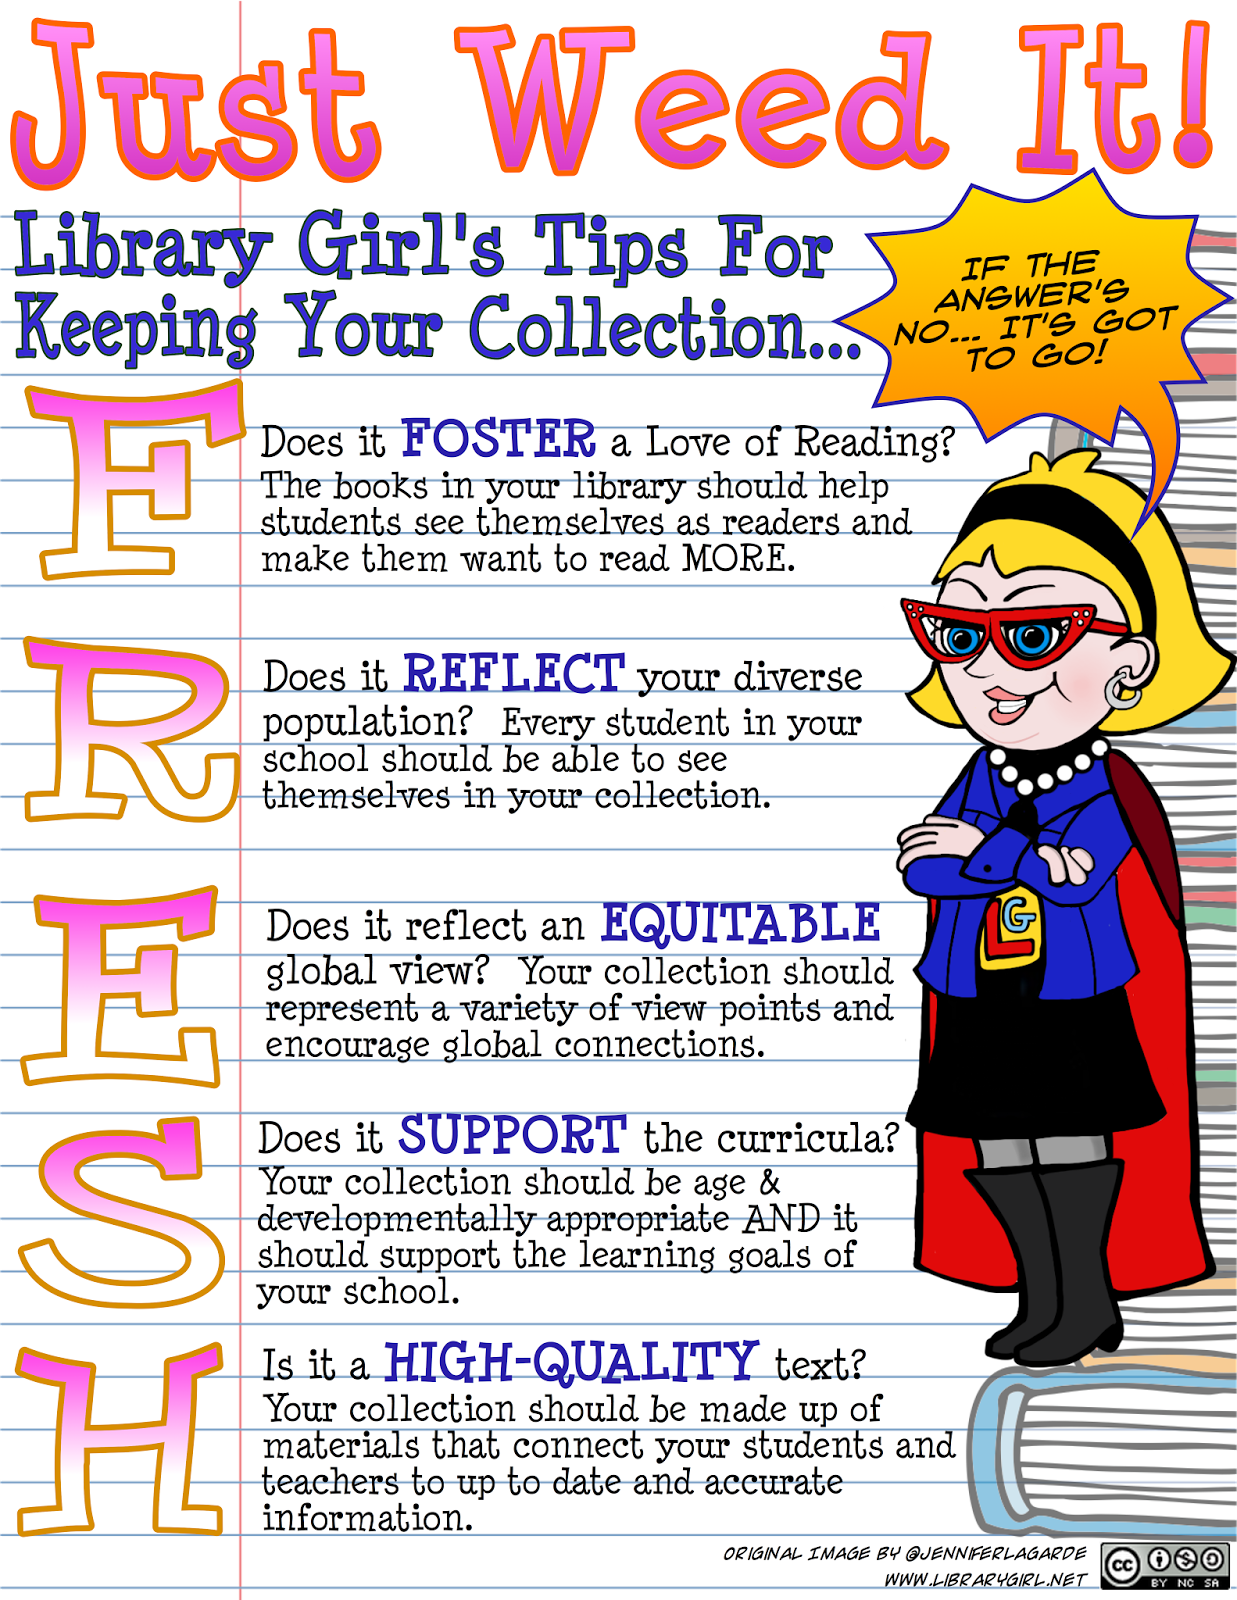 the adventures of library girl how d you do that creating eventually i graduated from ms word sorry bill to using comic life to create digital flyers like this one about weeding over the years i ve fielded